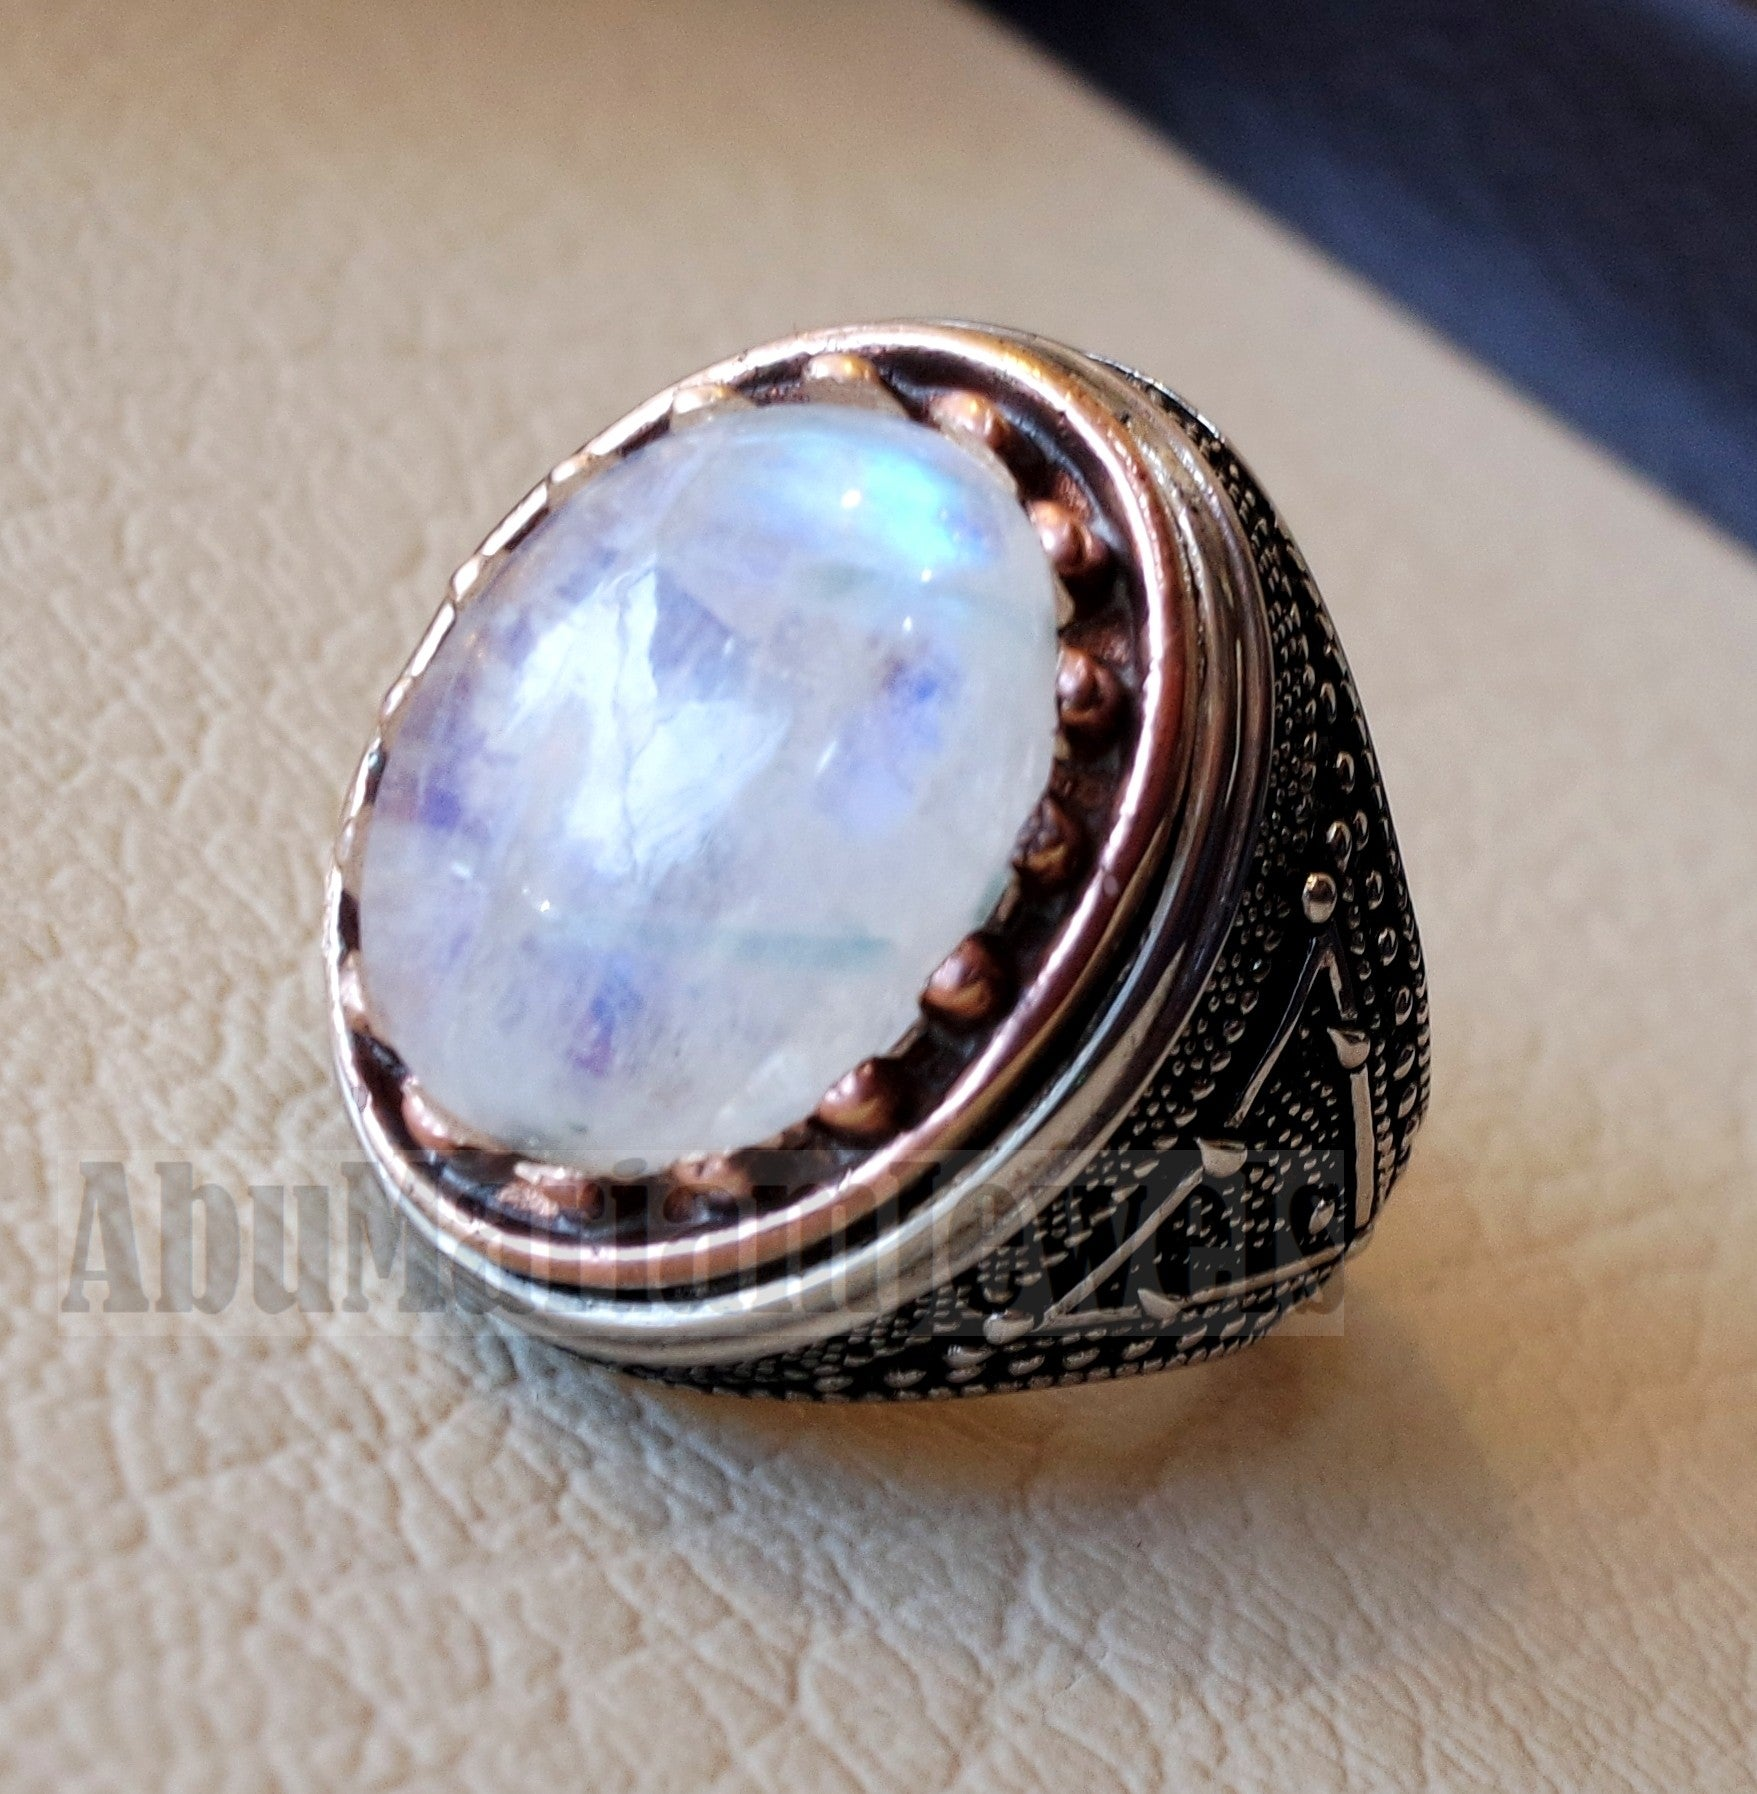 flashy moonstone men ring natural stone dur al najaf sterling silver 925 and bronze stunning genuine gem two ottoman style jewelry all sizes